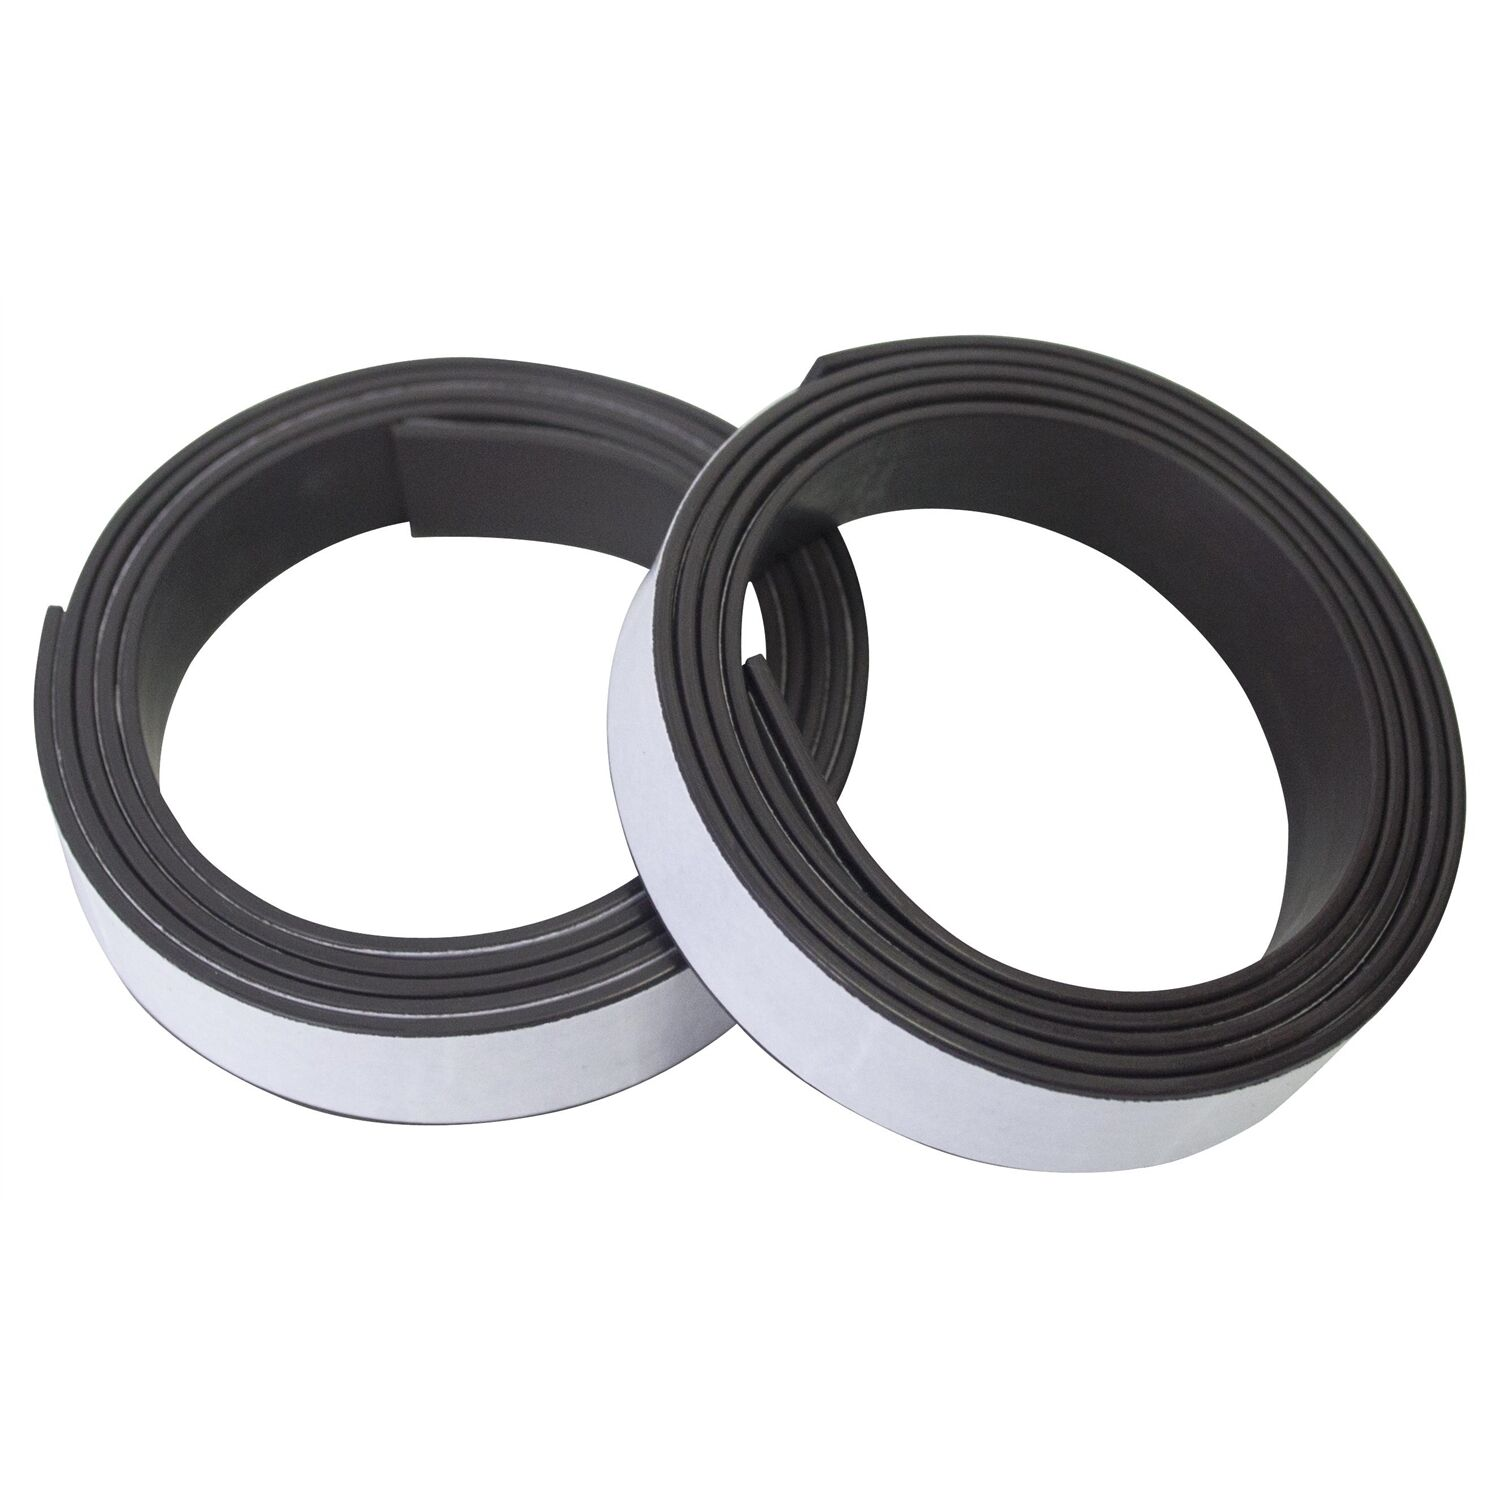 Self Adhesive Magnetic Tape Sticky Backed Magnet Strip 2 Different Strengths